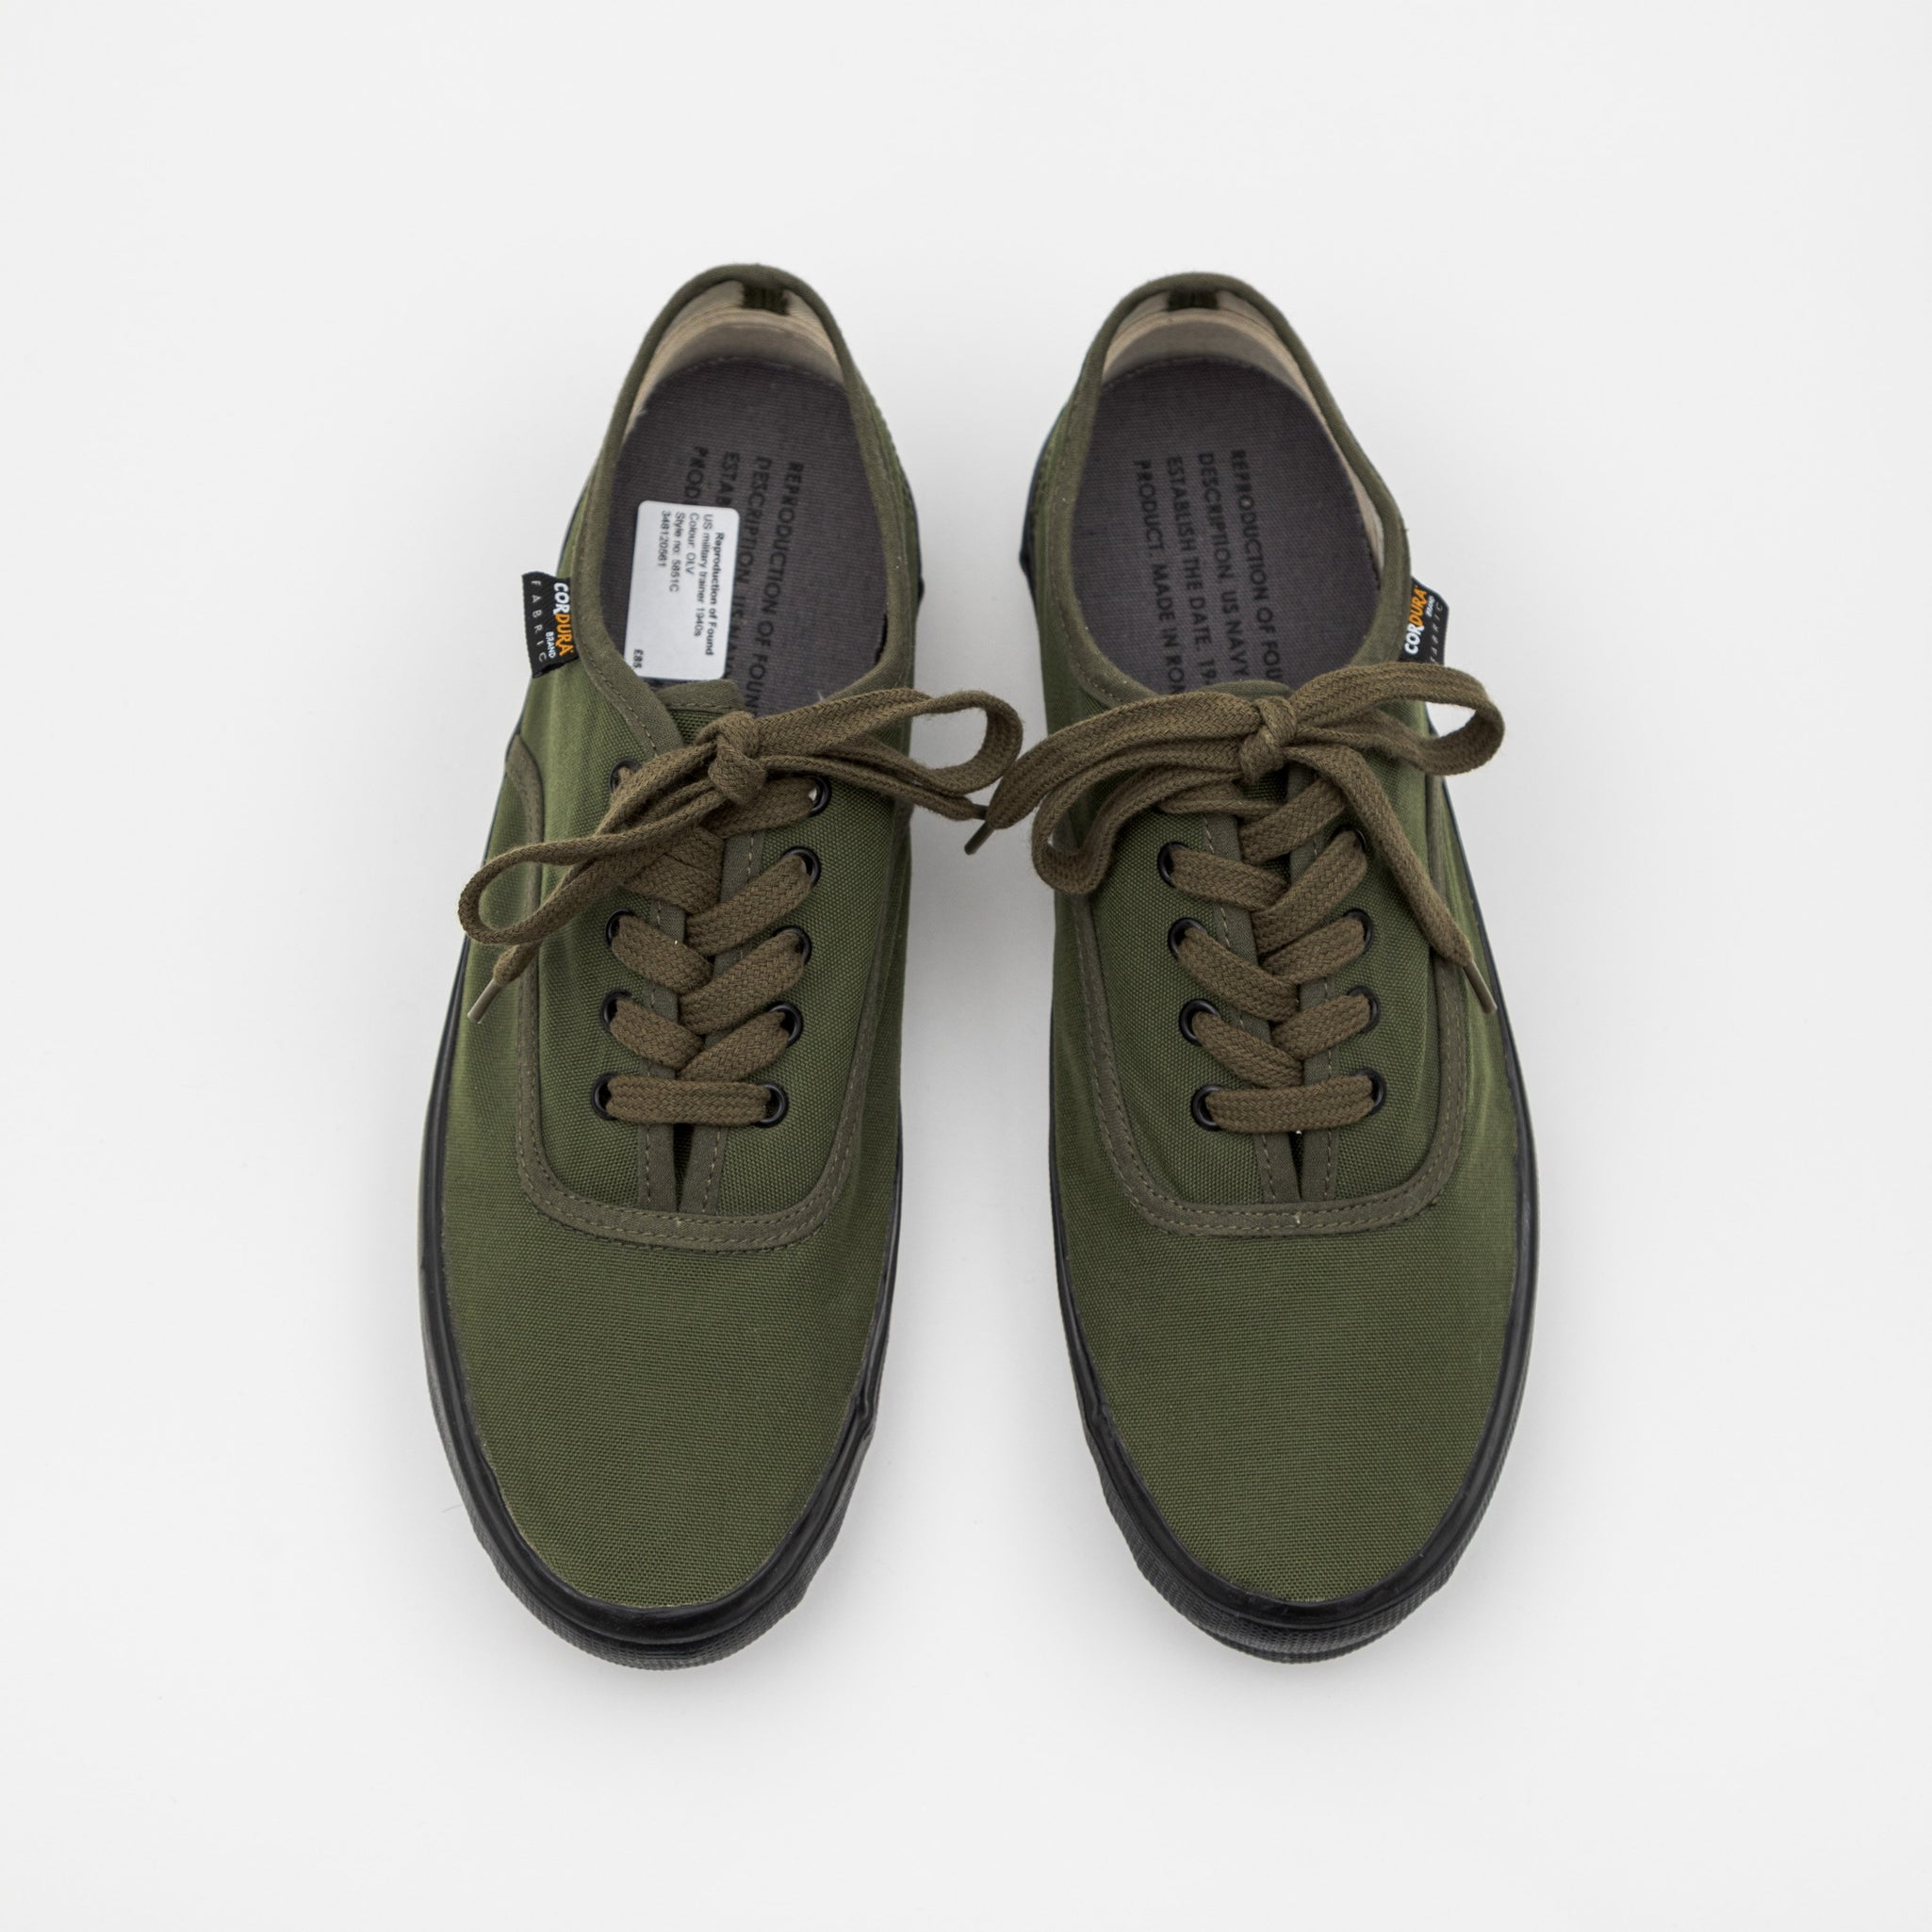 ROF-US-NAVY-MILITARY-TRAINER-OLIVE-SUNNYSIDERS-7.jpg